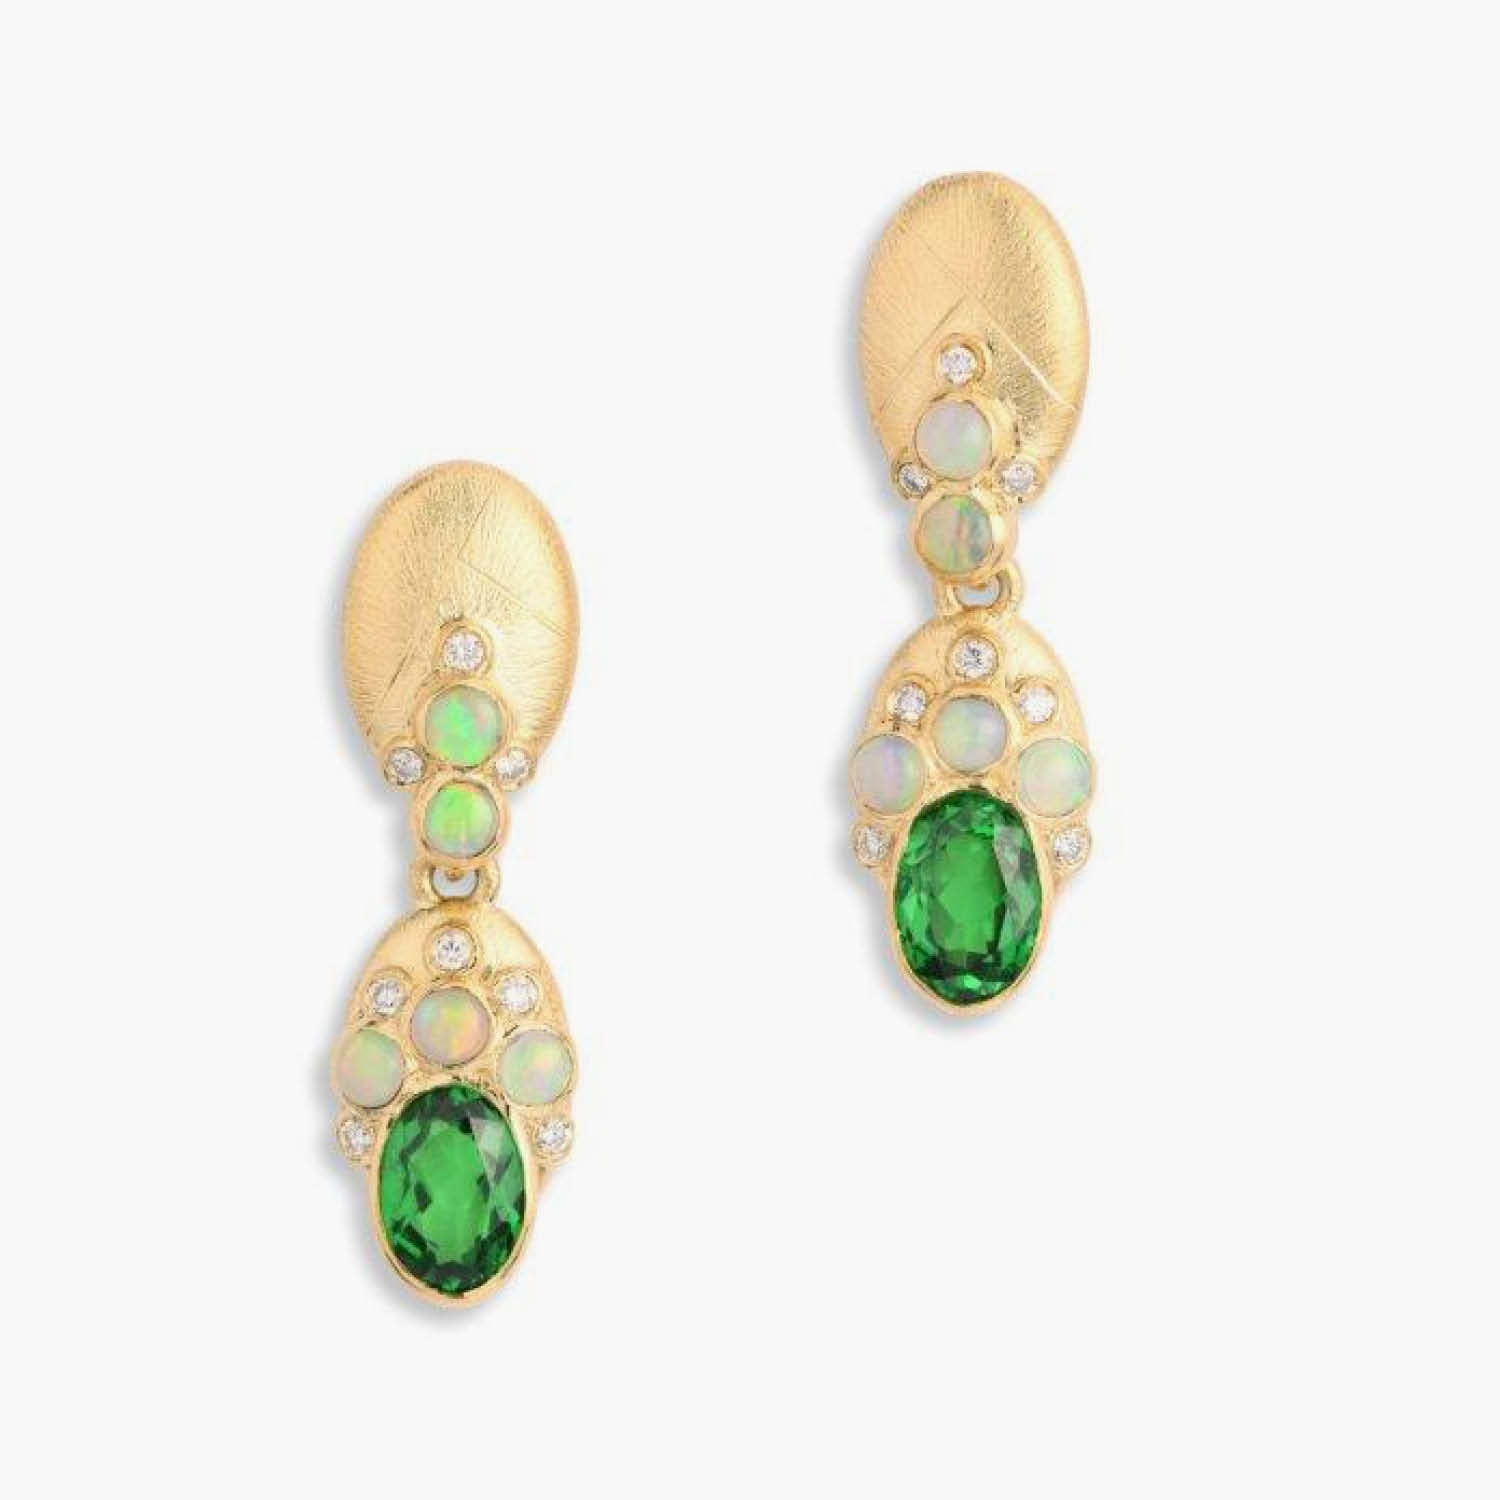 Constellation Collection Oval Earrings with Tsavorites